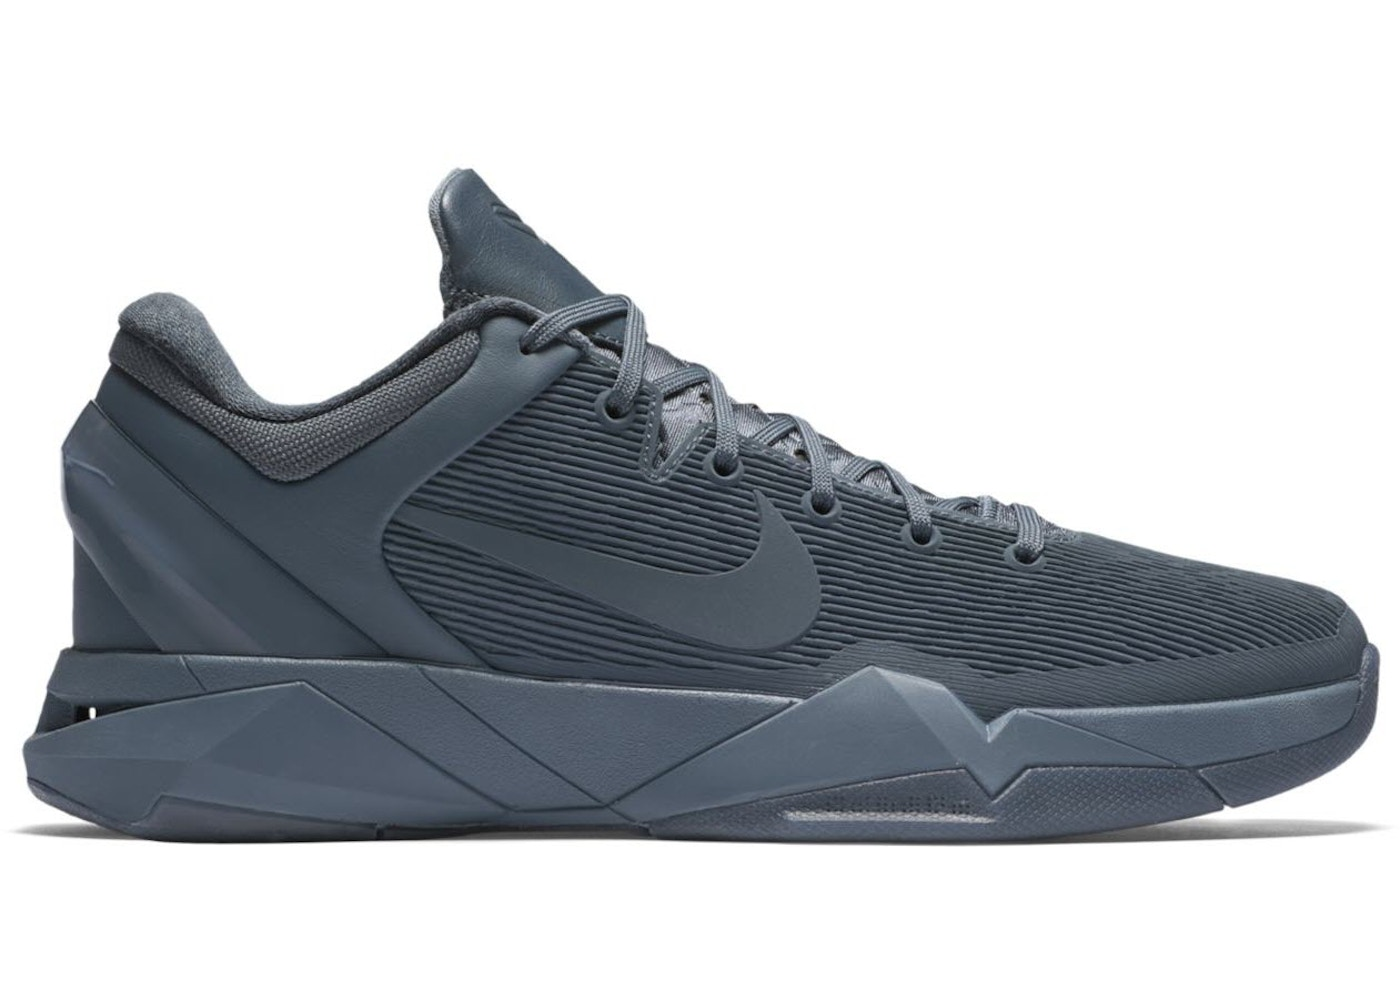 detailed look a0098 c88cd Kobe 7 Black Mamba Collection Fade to Black - 869460-442